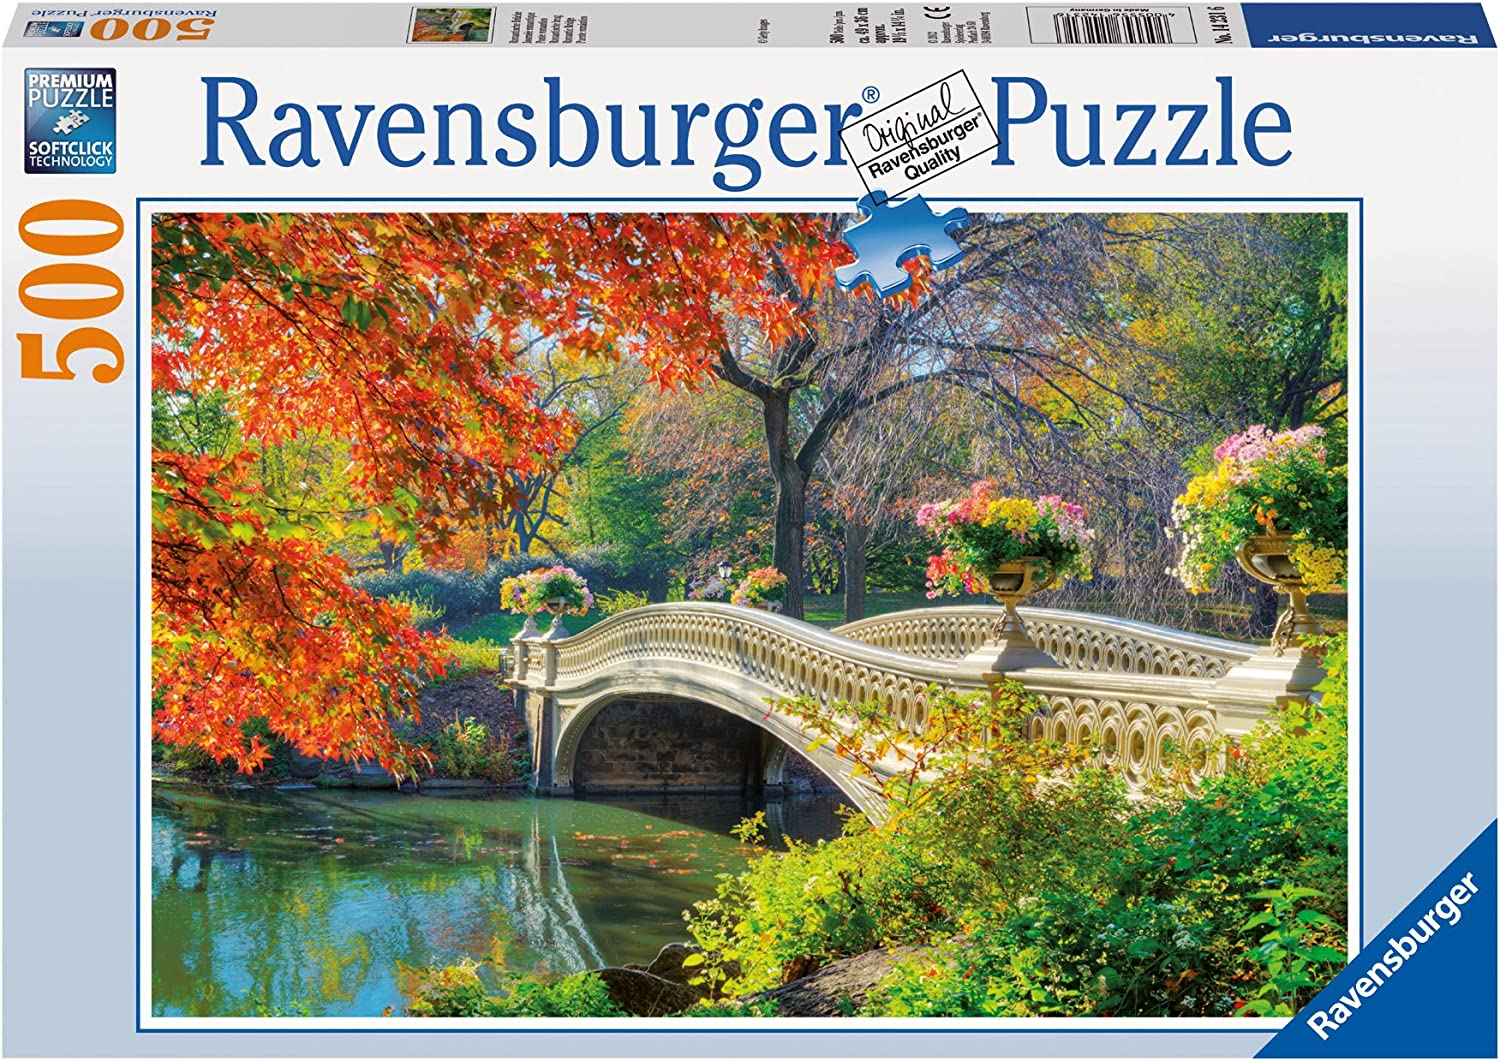 Moonideal Jigsaw Puzzles 1000 Pieces for Adults//Kids Garden